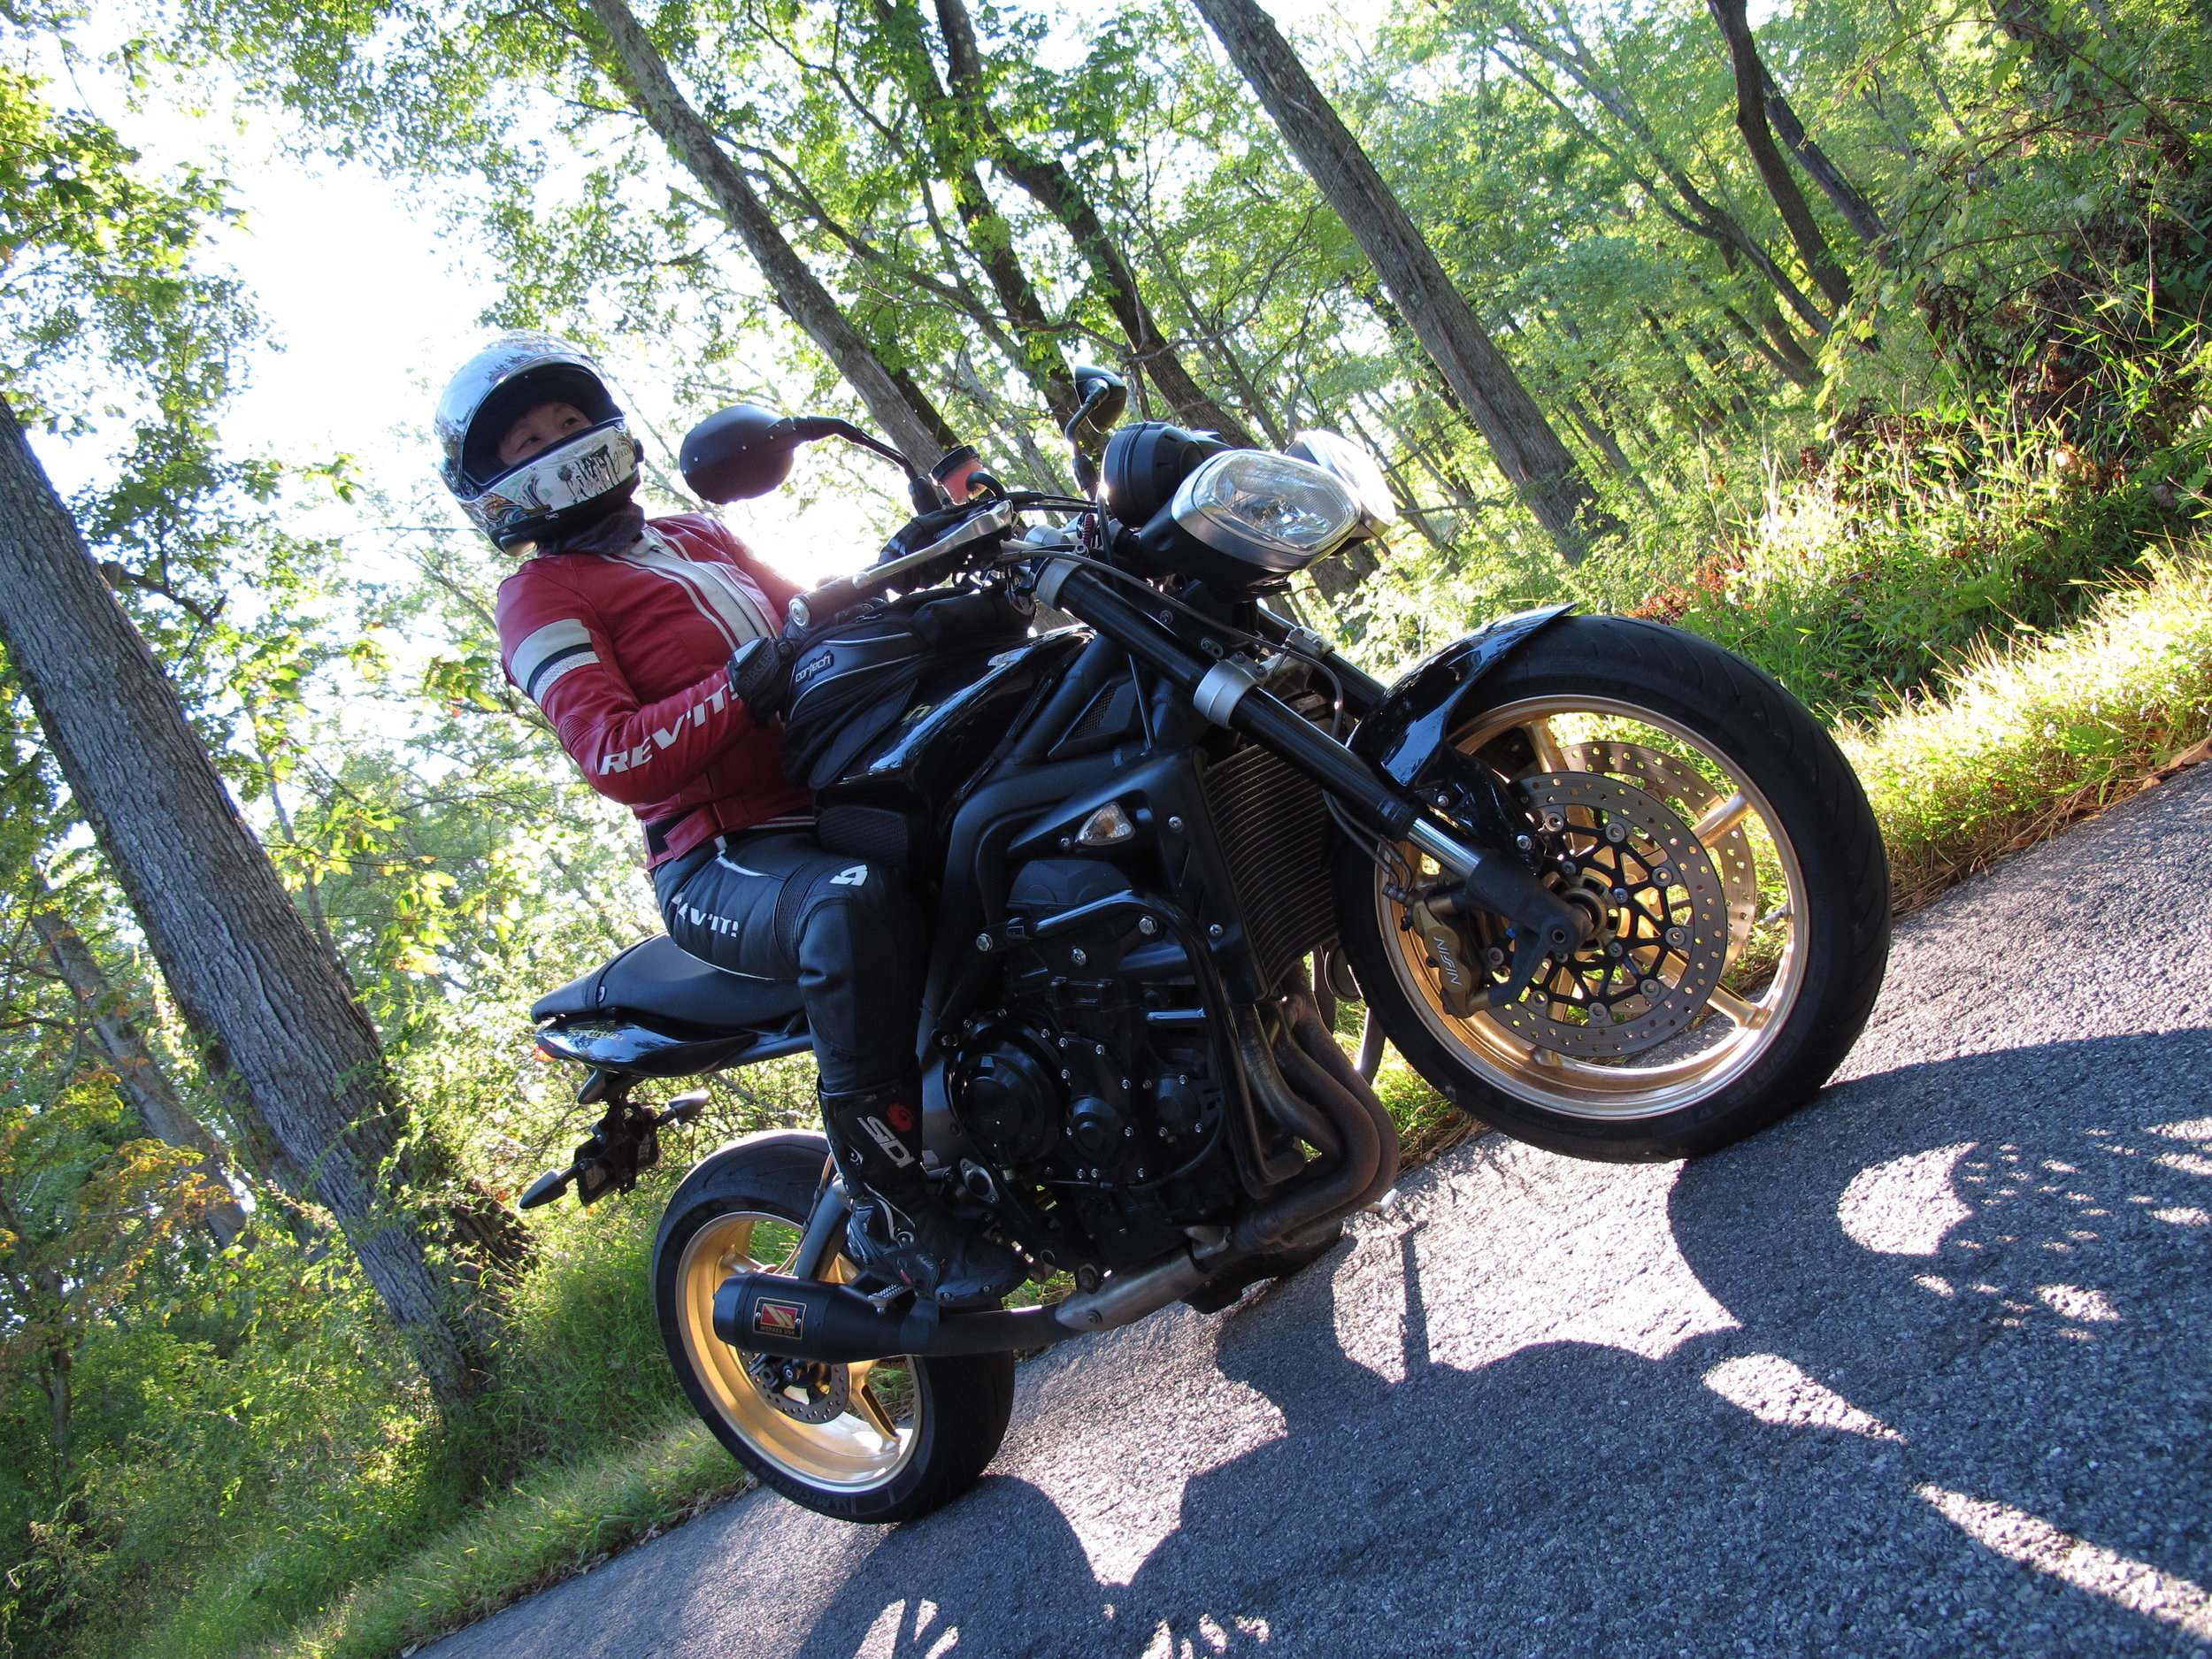 Me, feeling supremely confident on my '12 Street Triple R. But it wasn't always that way.